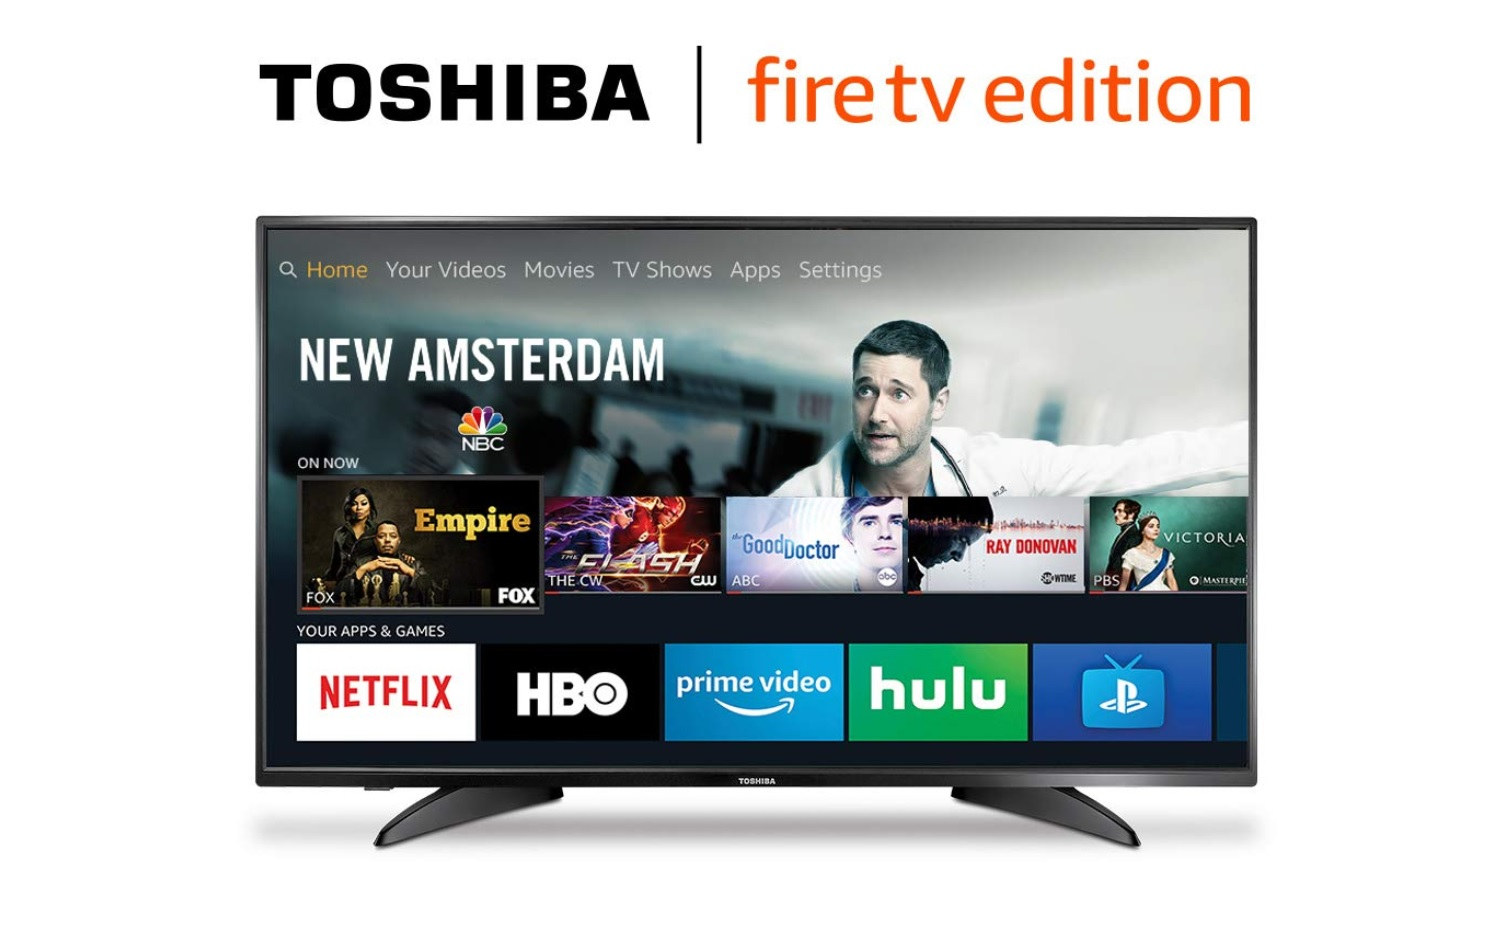 b04b4fbcb Amazon is currently selling the Toshiba 43